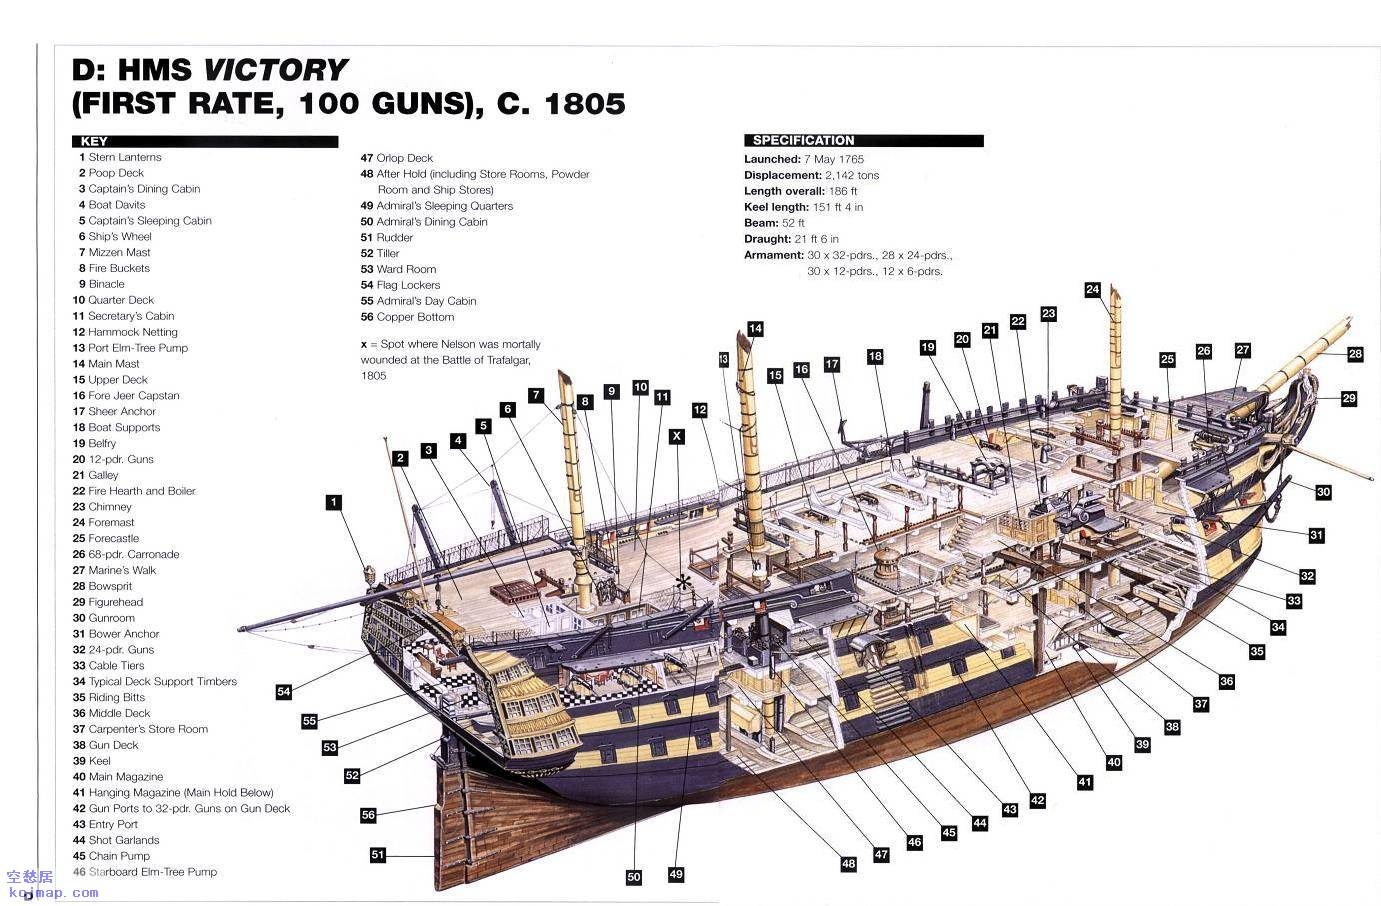 Here's a cutaway of HMS Victory ...